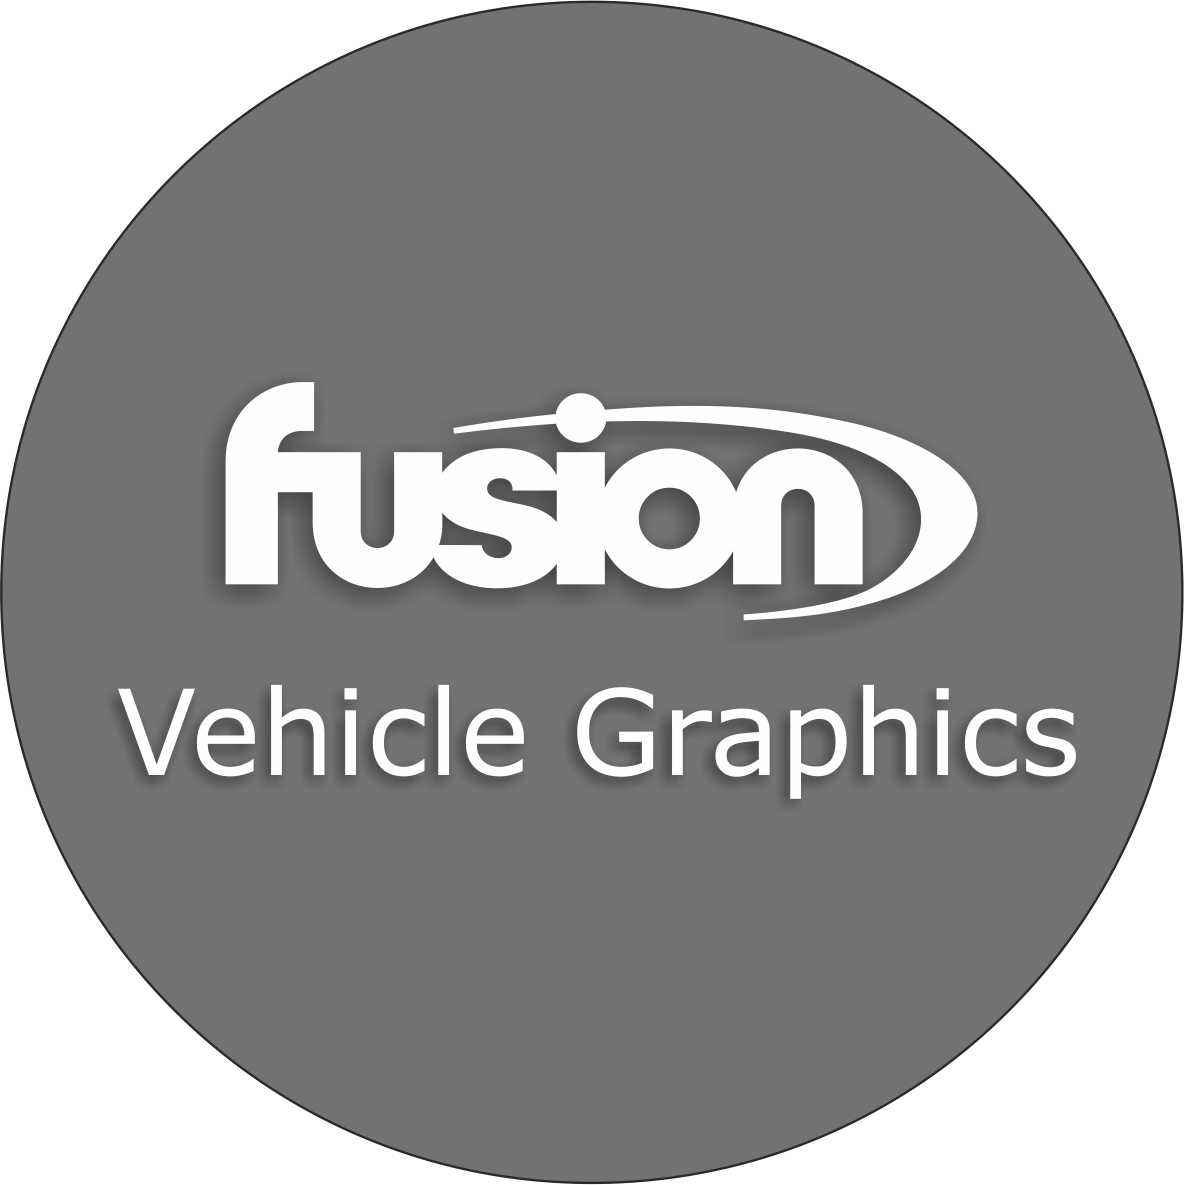 Fusion Vehicle Graphics